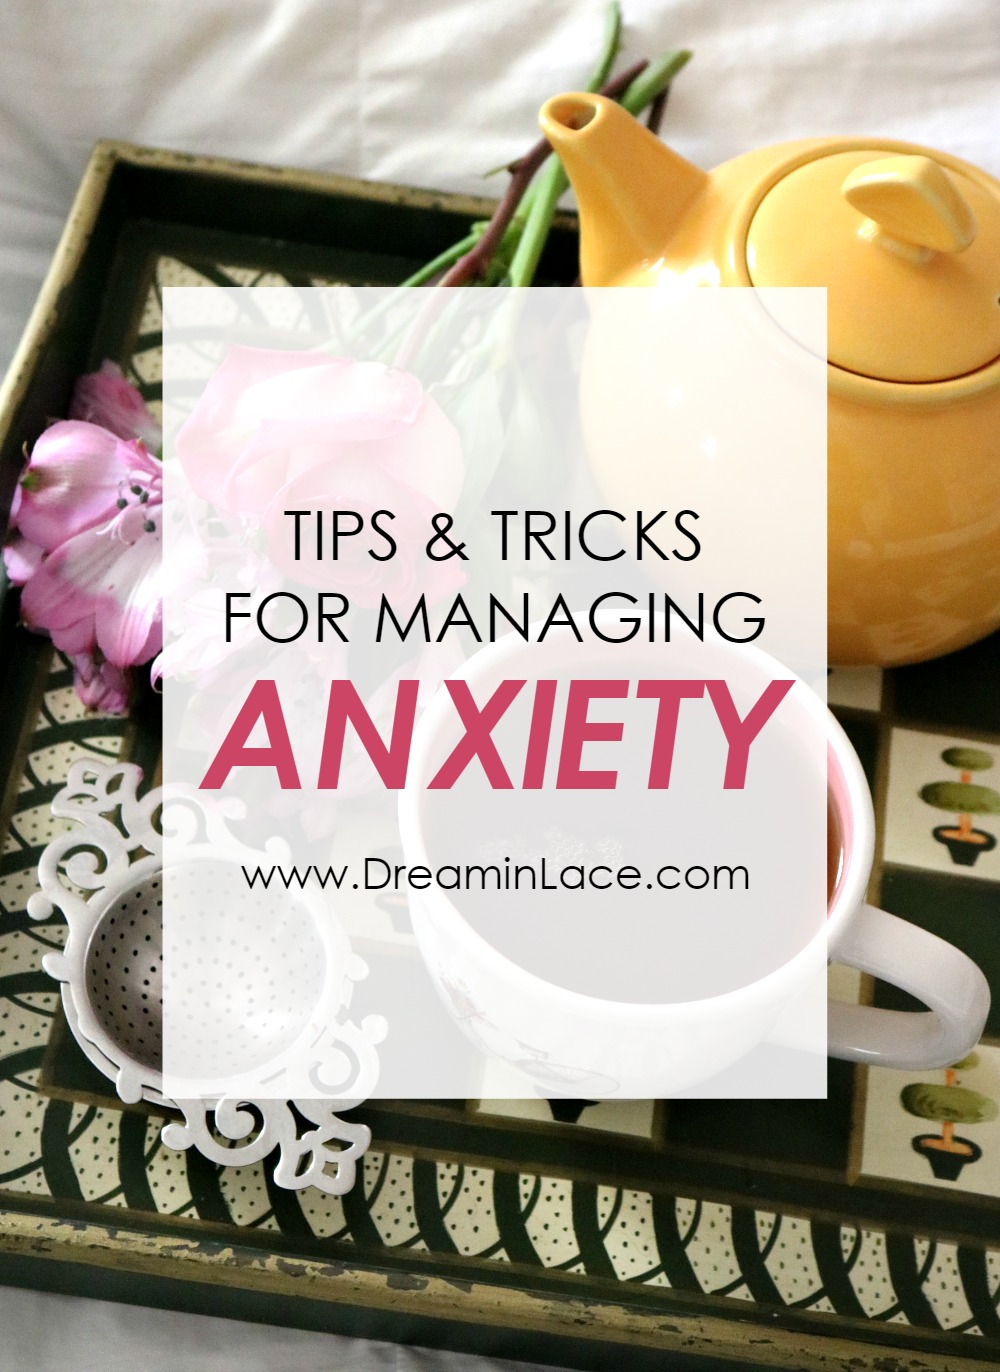 Tips for Managing Anxiety I DreaminLace.com #Anxiety #Inspo